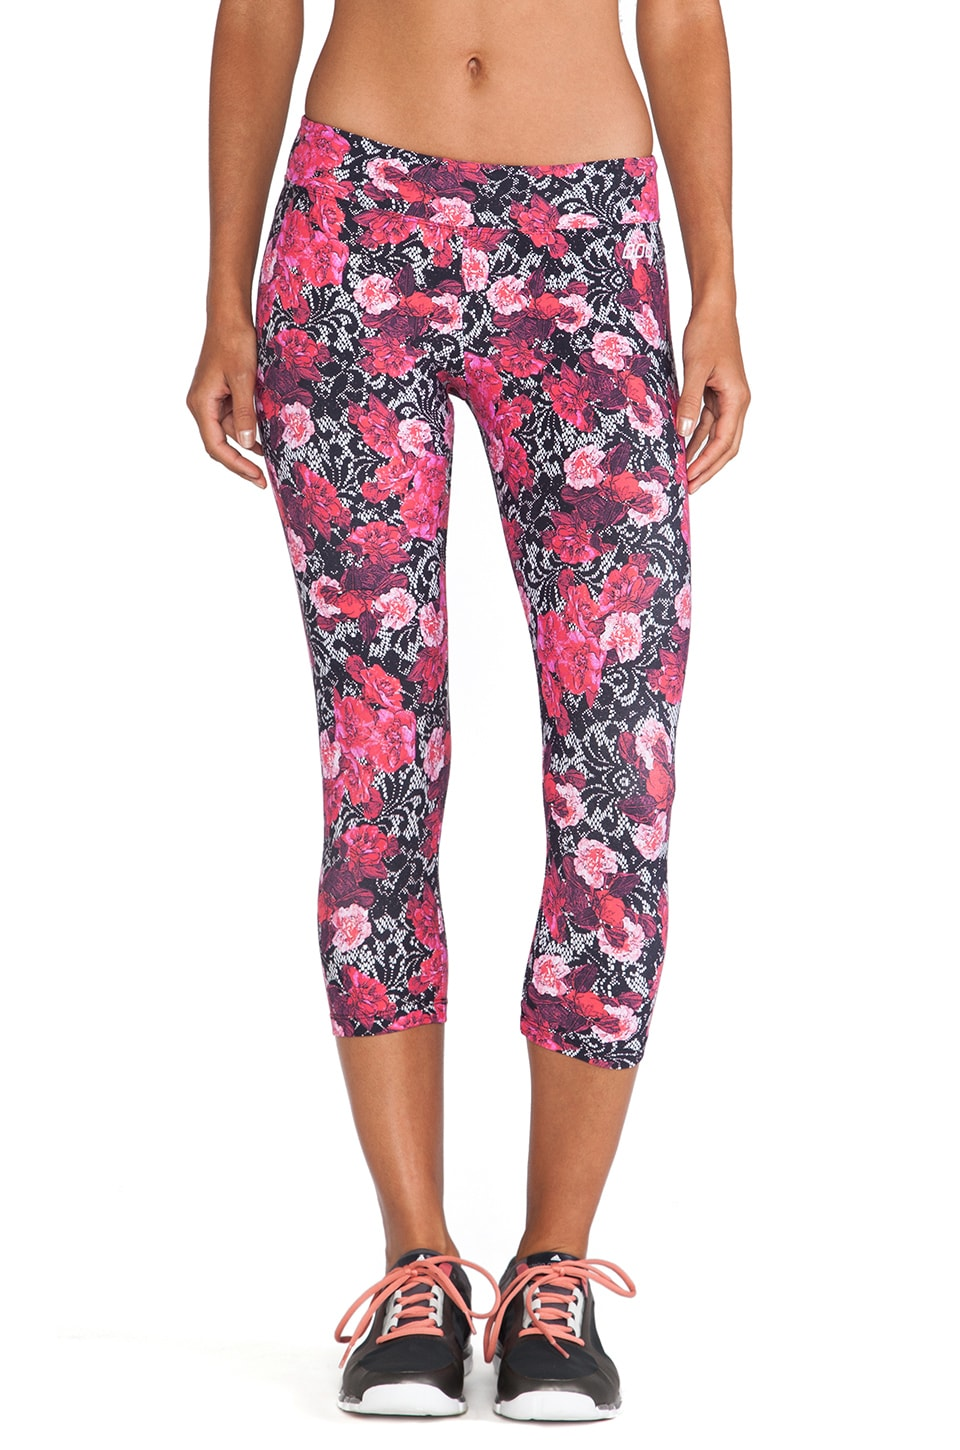 Lorna Jane Gratitude 7/8 Tight in Printed